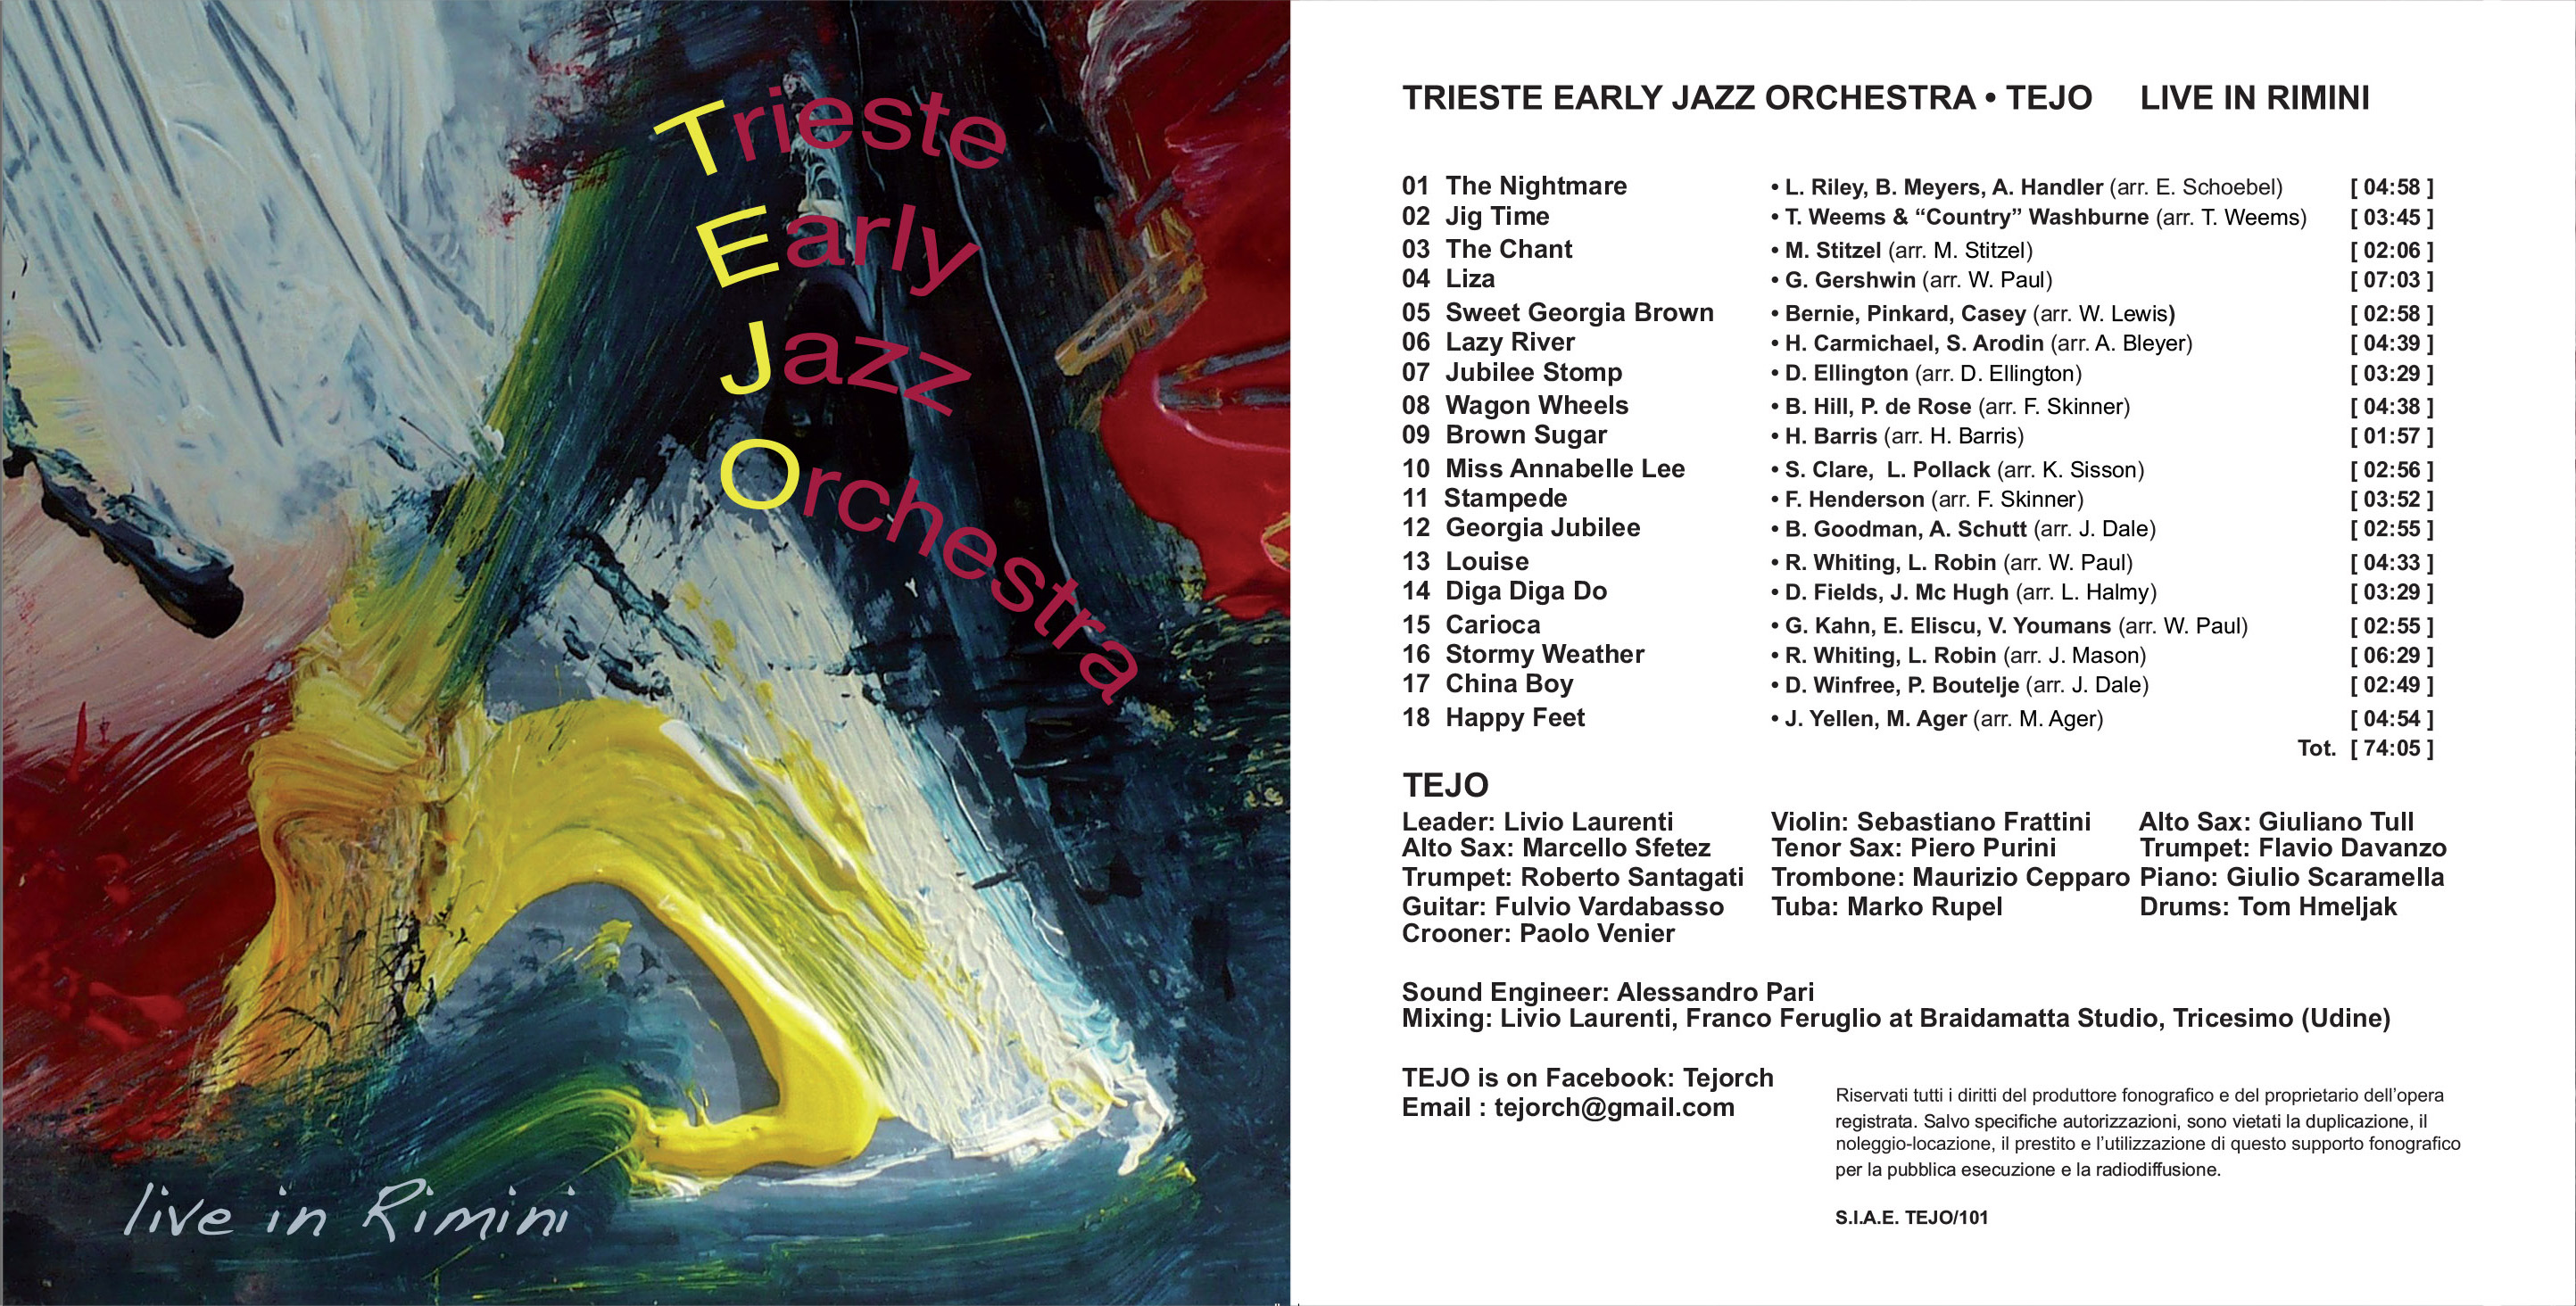 Trieste Early Jazz Orchestra Live In Rimini